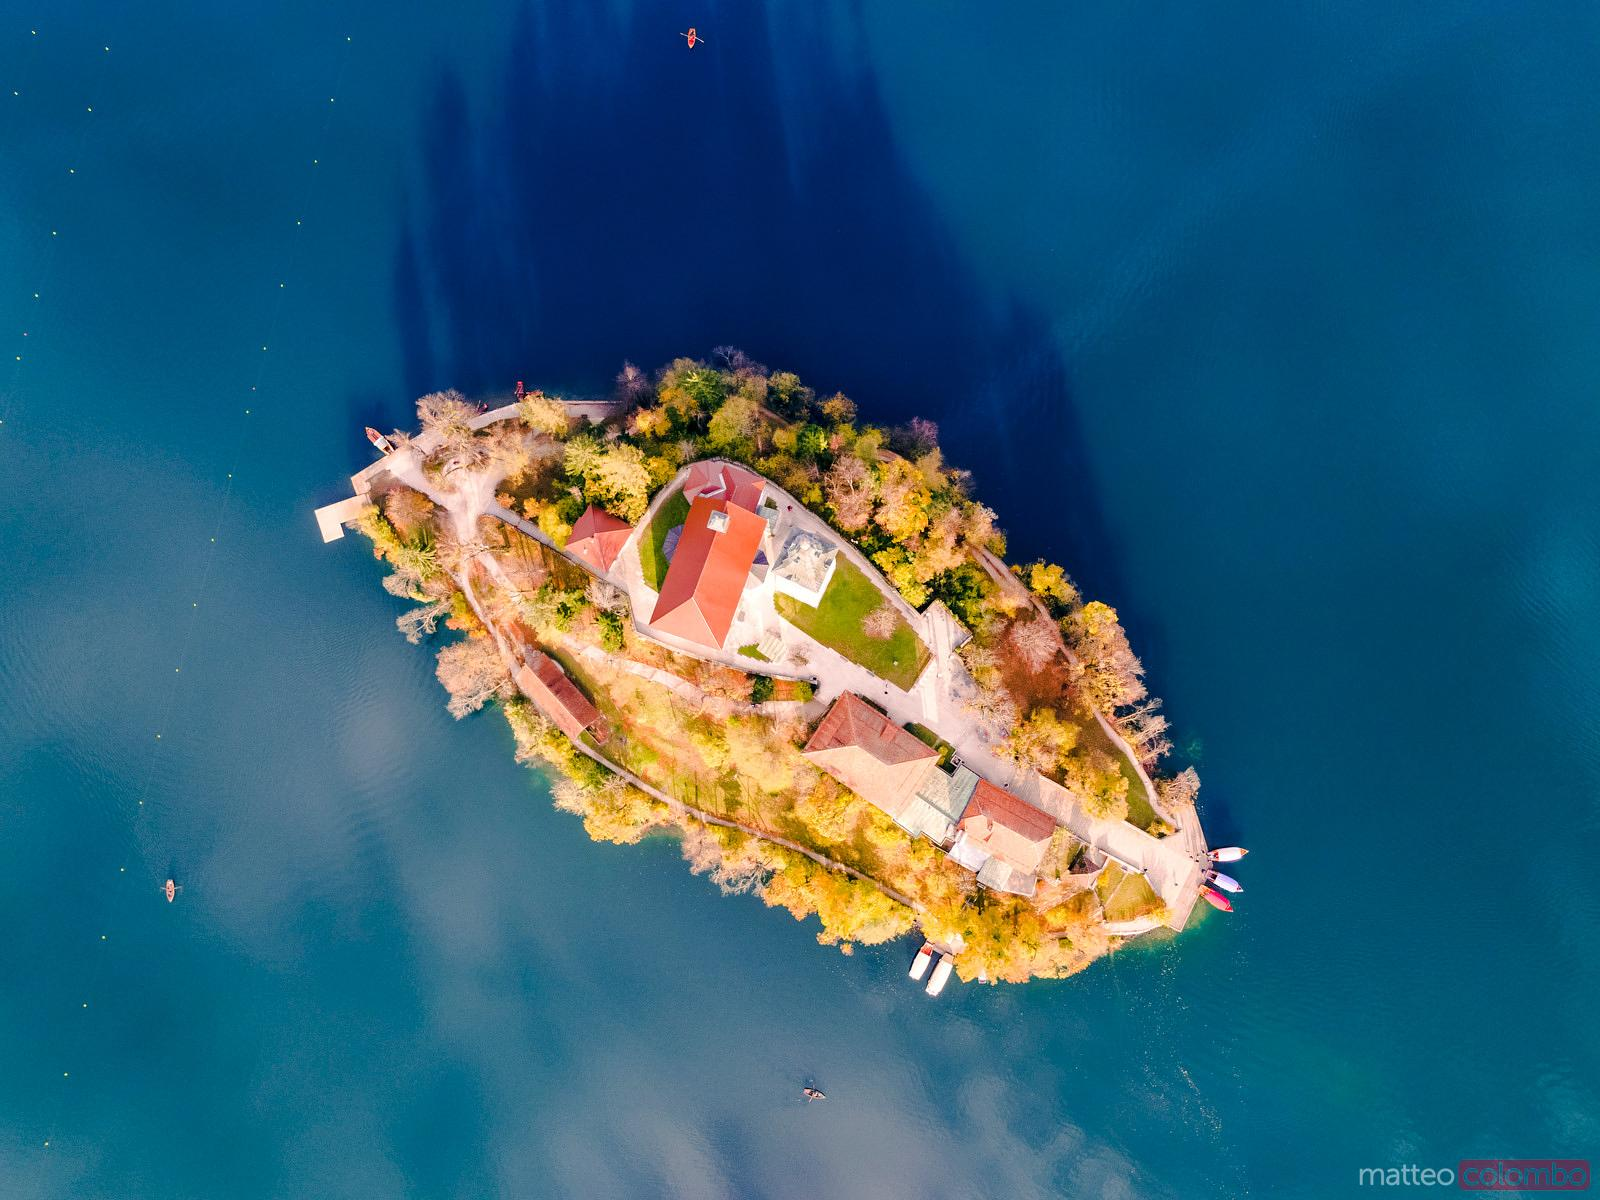 Drone overhead view of Bled island, Slovenia